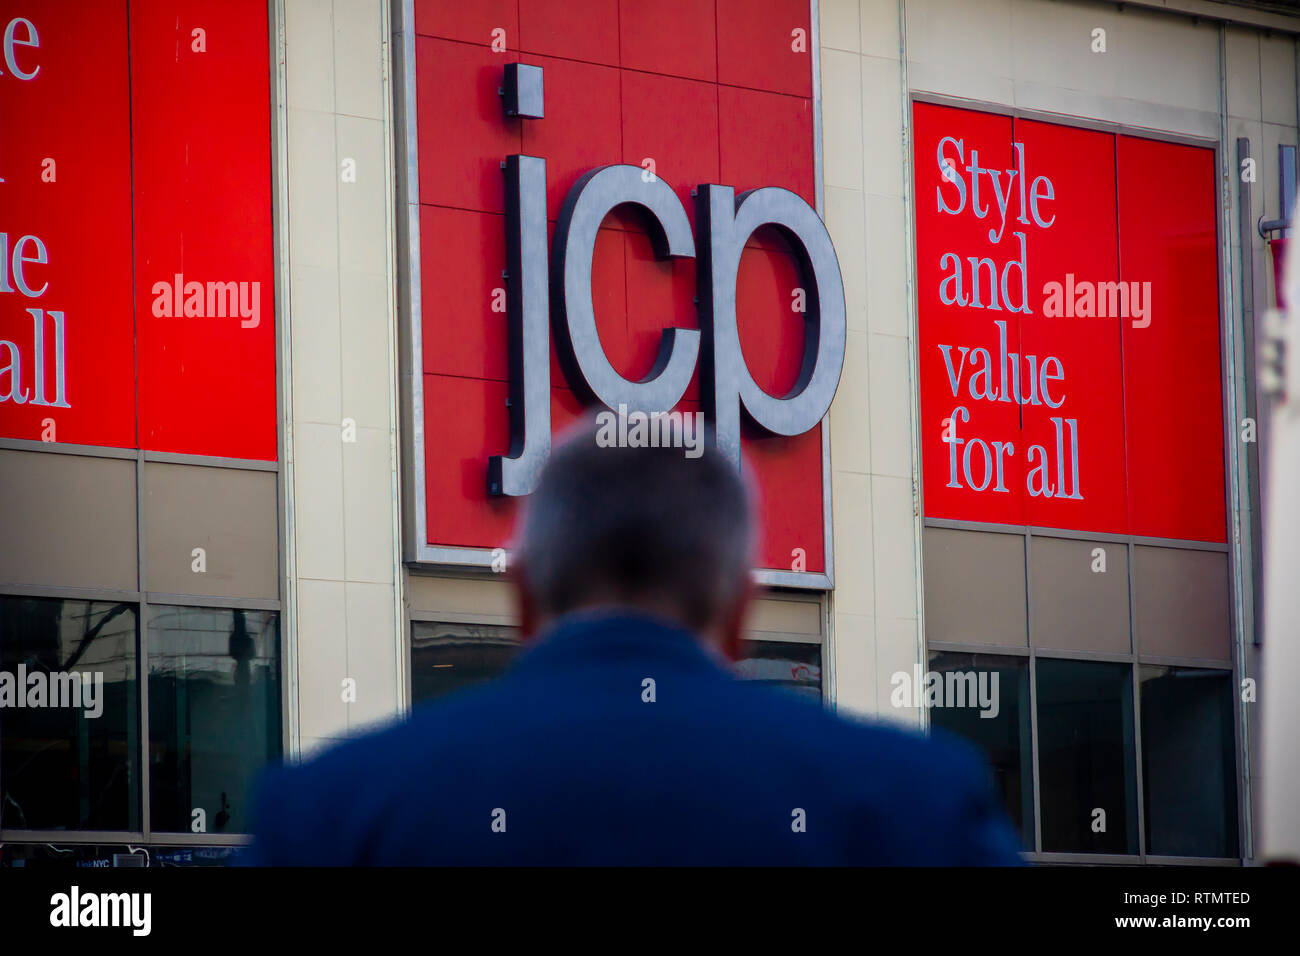 The JCPenney store in the Manhattan Mall in New York on Tuesday, February 26, 2019. The J.C. Penney Co. is scheduled to report fourth-quarter earnings on February 28. (© Richard B. Levine) - Stock Image